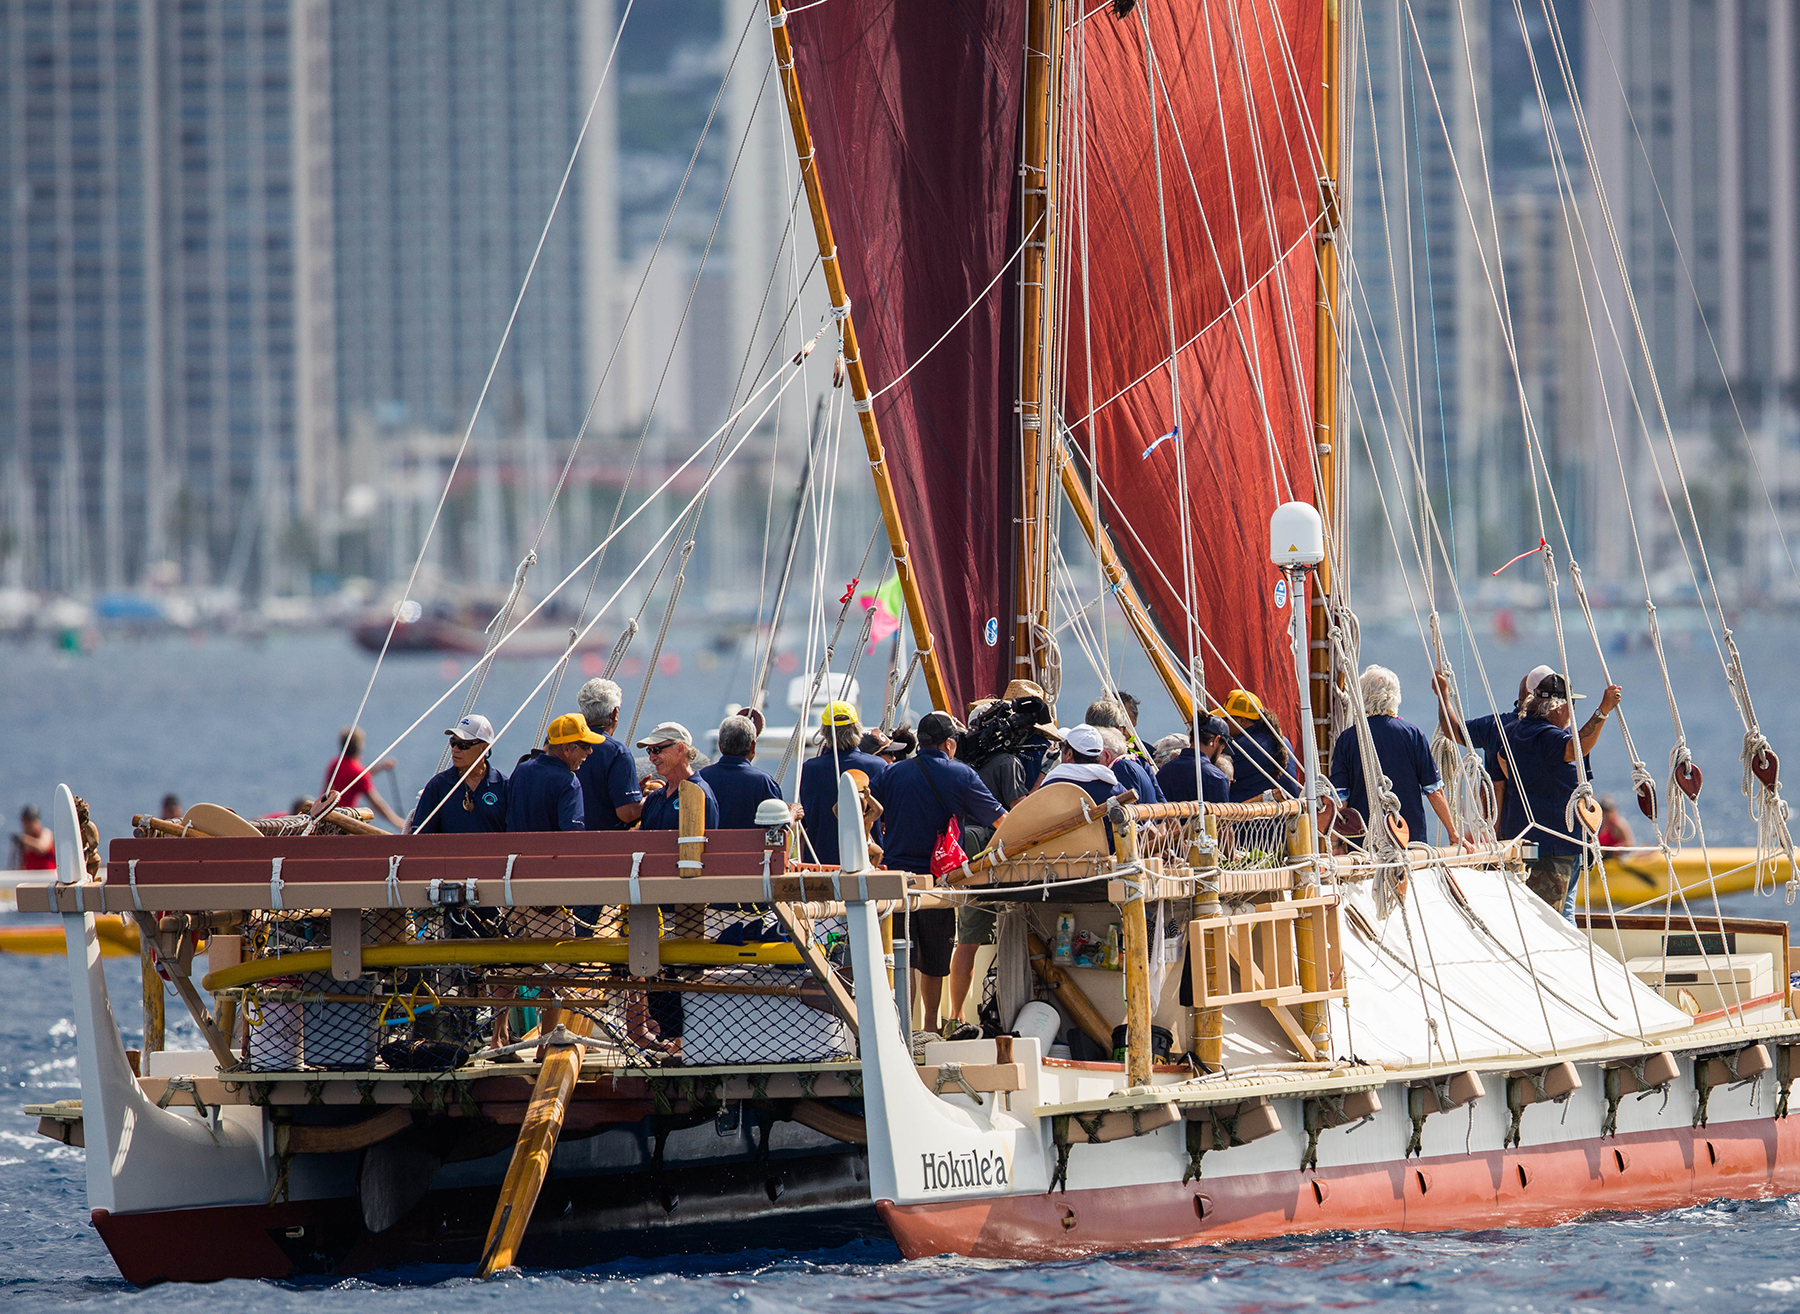 <p>Crewmembers are all smiles on their approach to Honolulu. Over the course of the journey, more than 250 volunteer sailors for the Polynesian Voyaging Society took turns aboard the vessel. / Anthony Quintano</p>